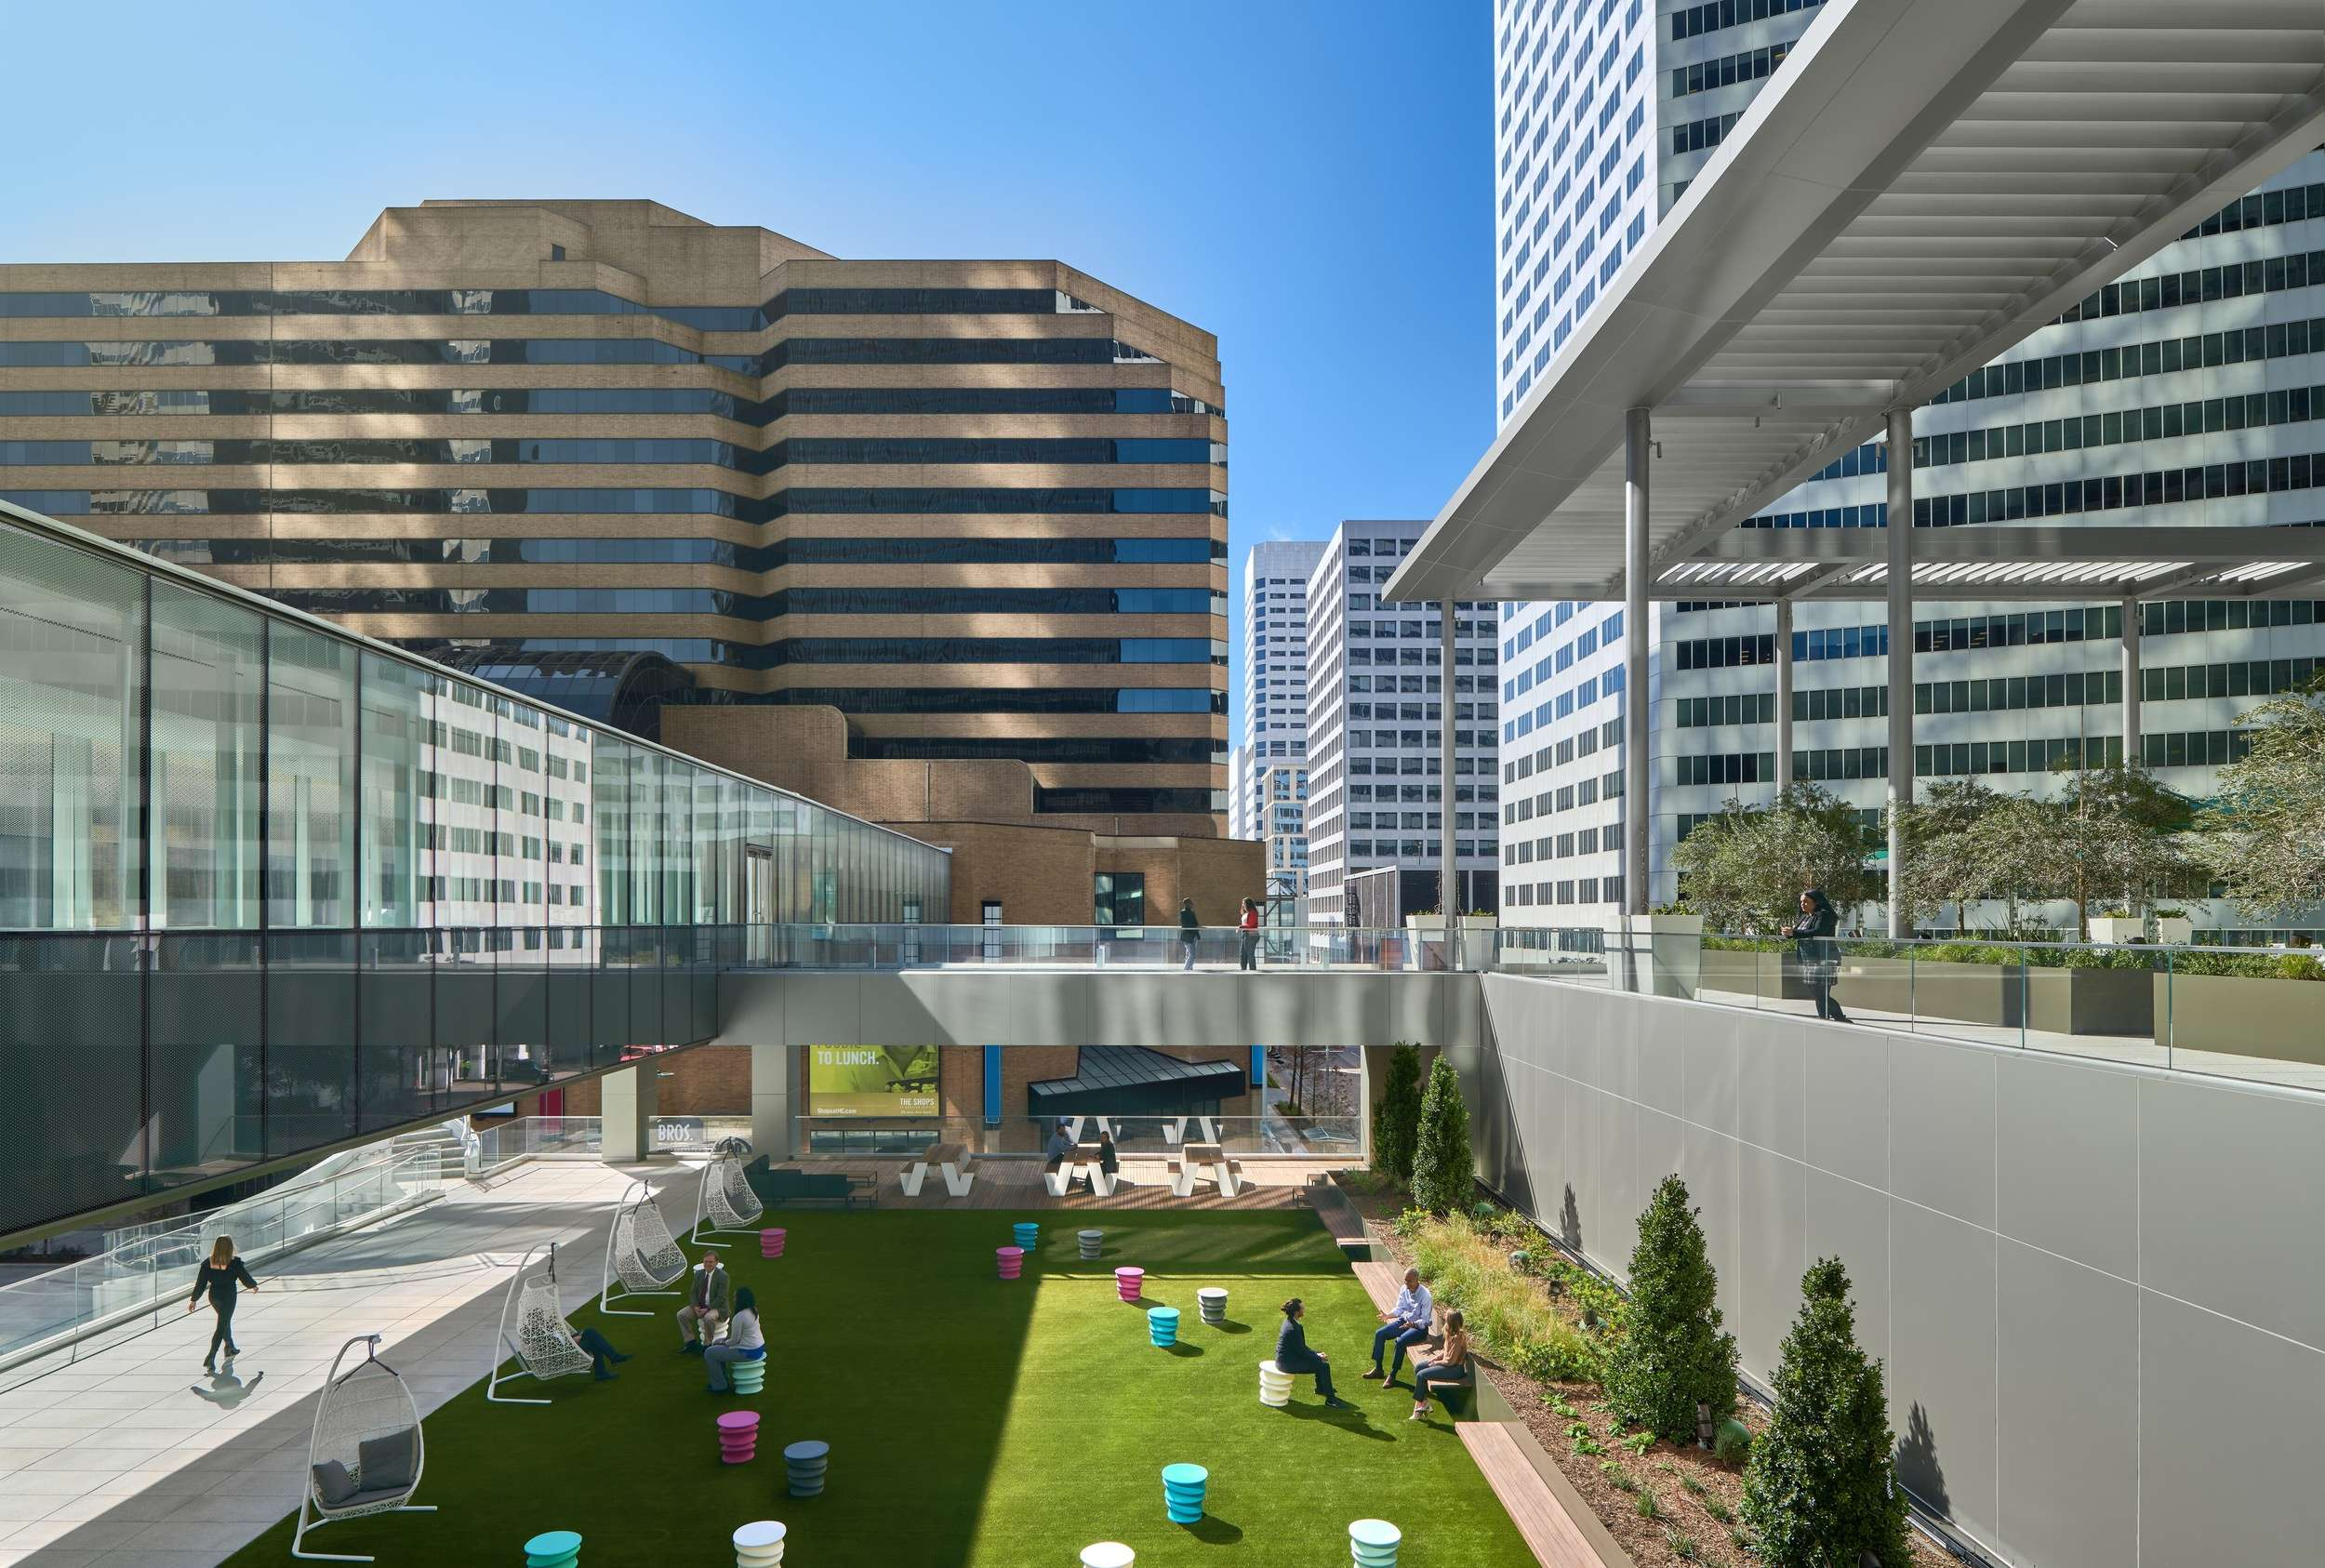 A park that is located between some buildings in a downtown area with some seating area.